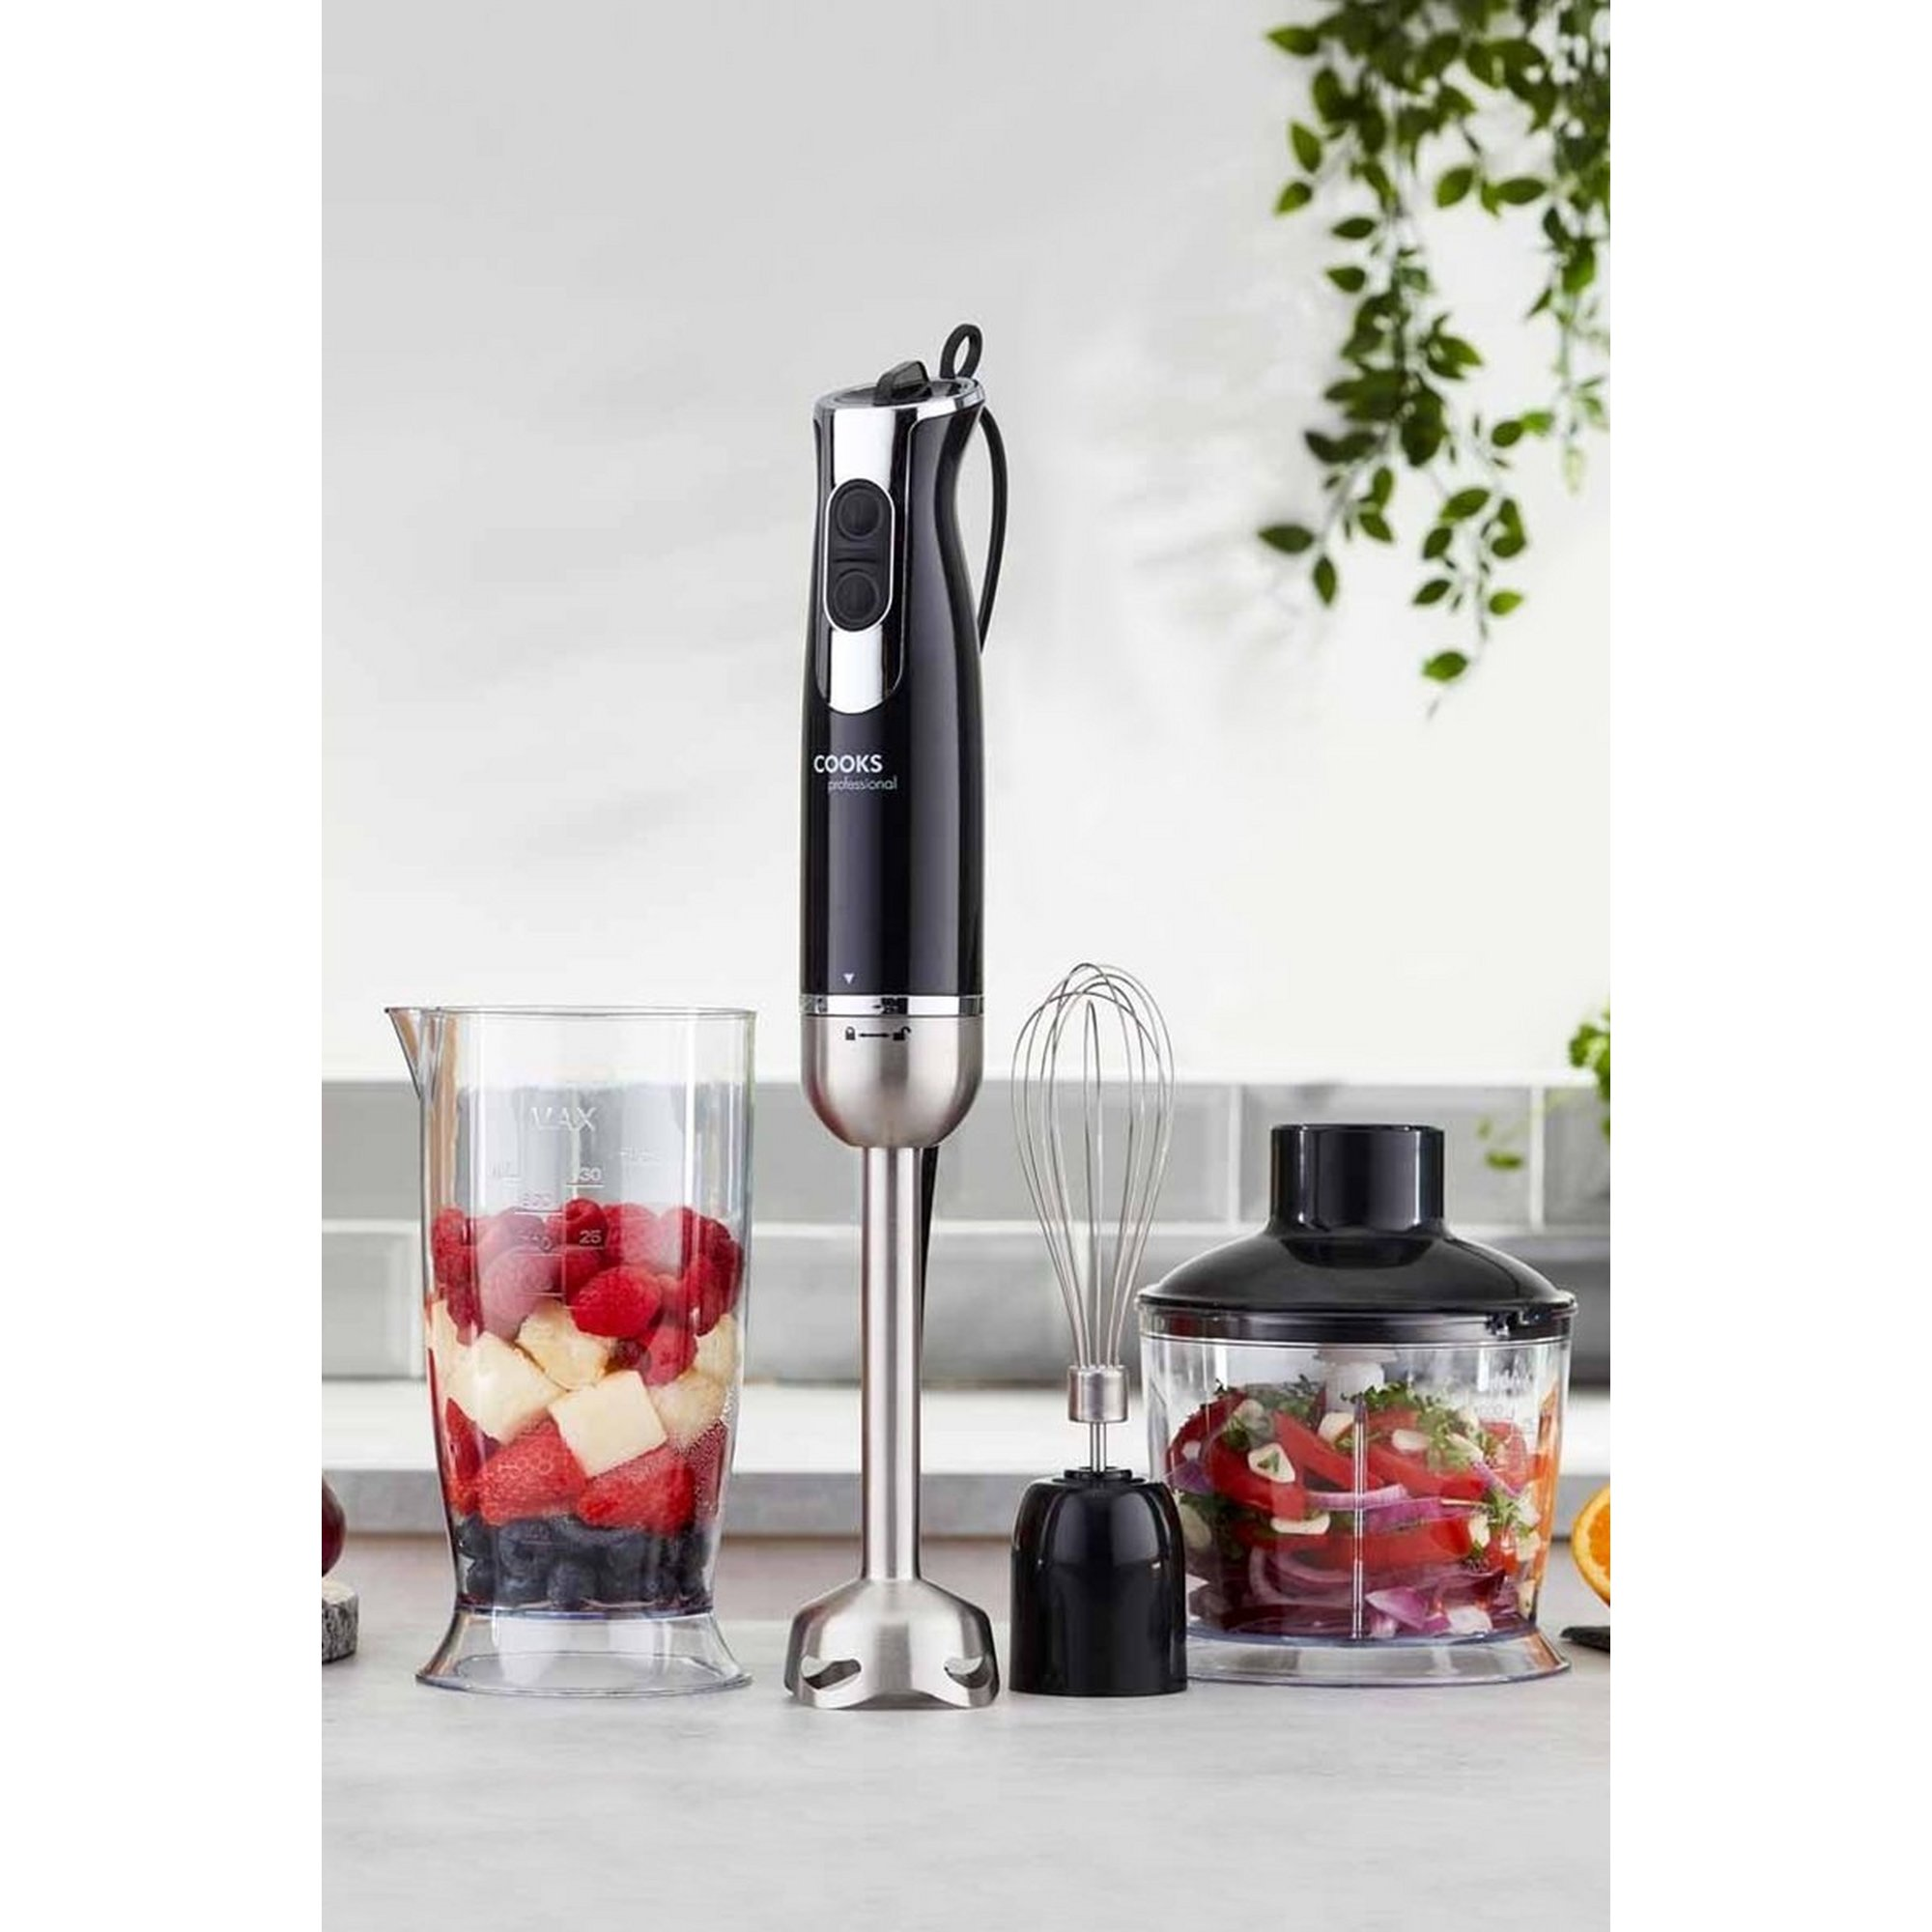 Image of Cooks Professional 1000W 3-in-1 Handheld Stick Blender